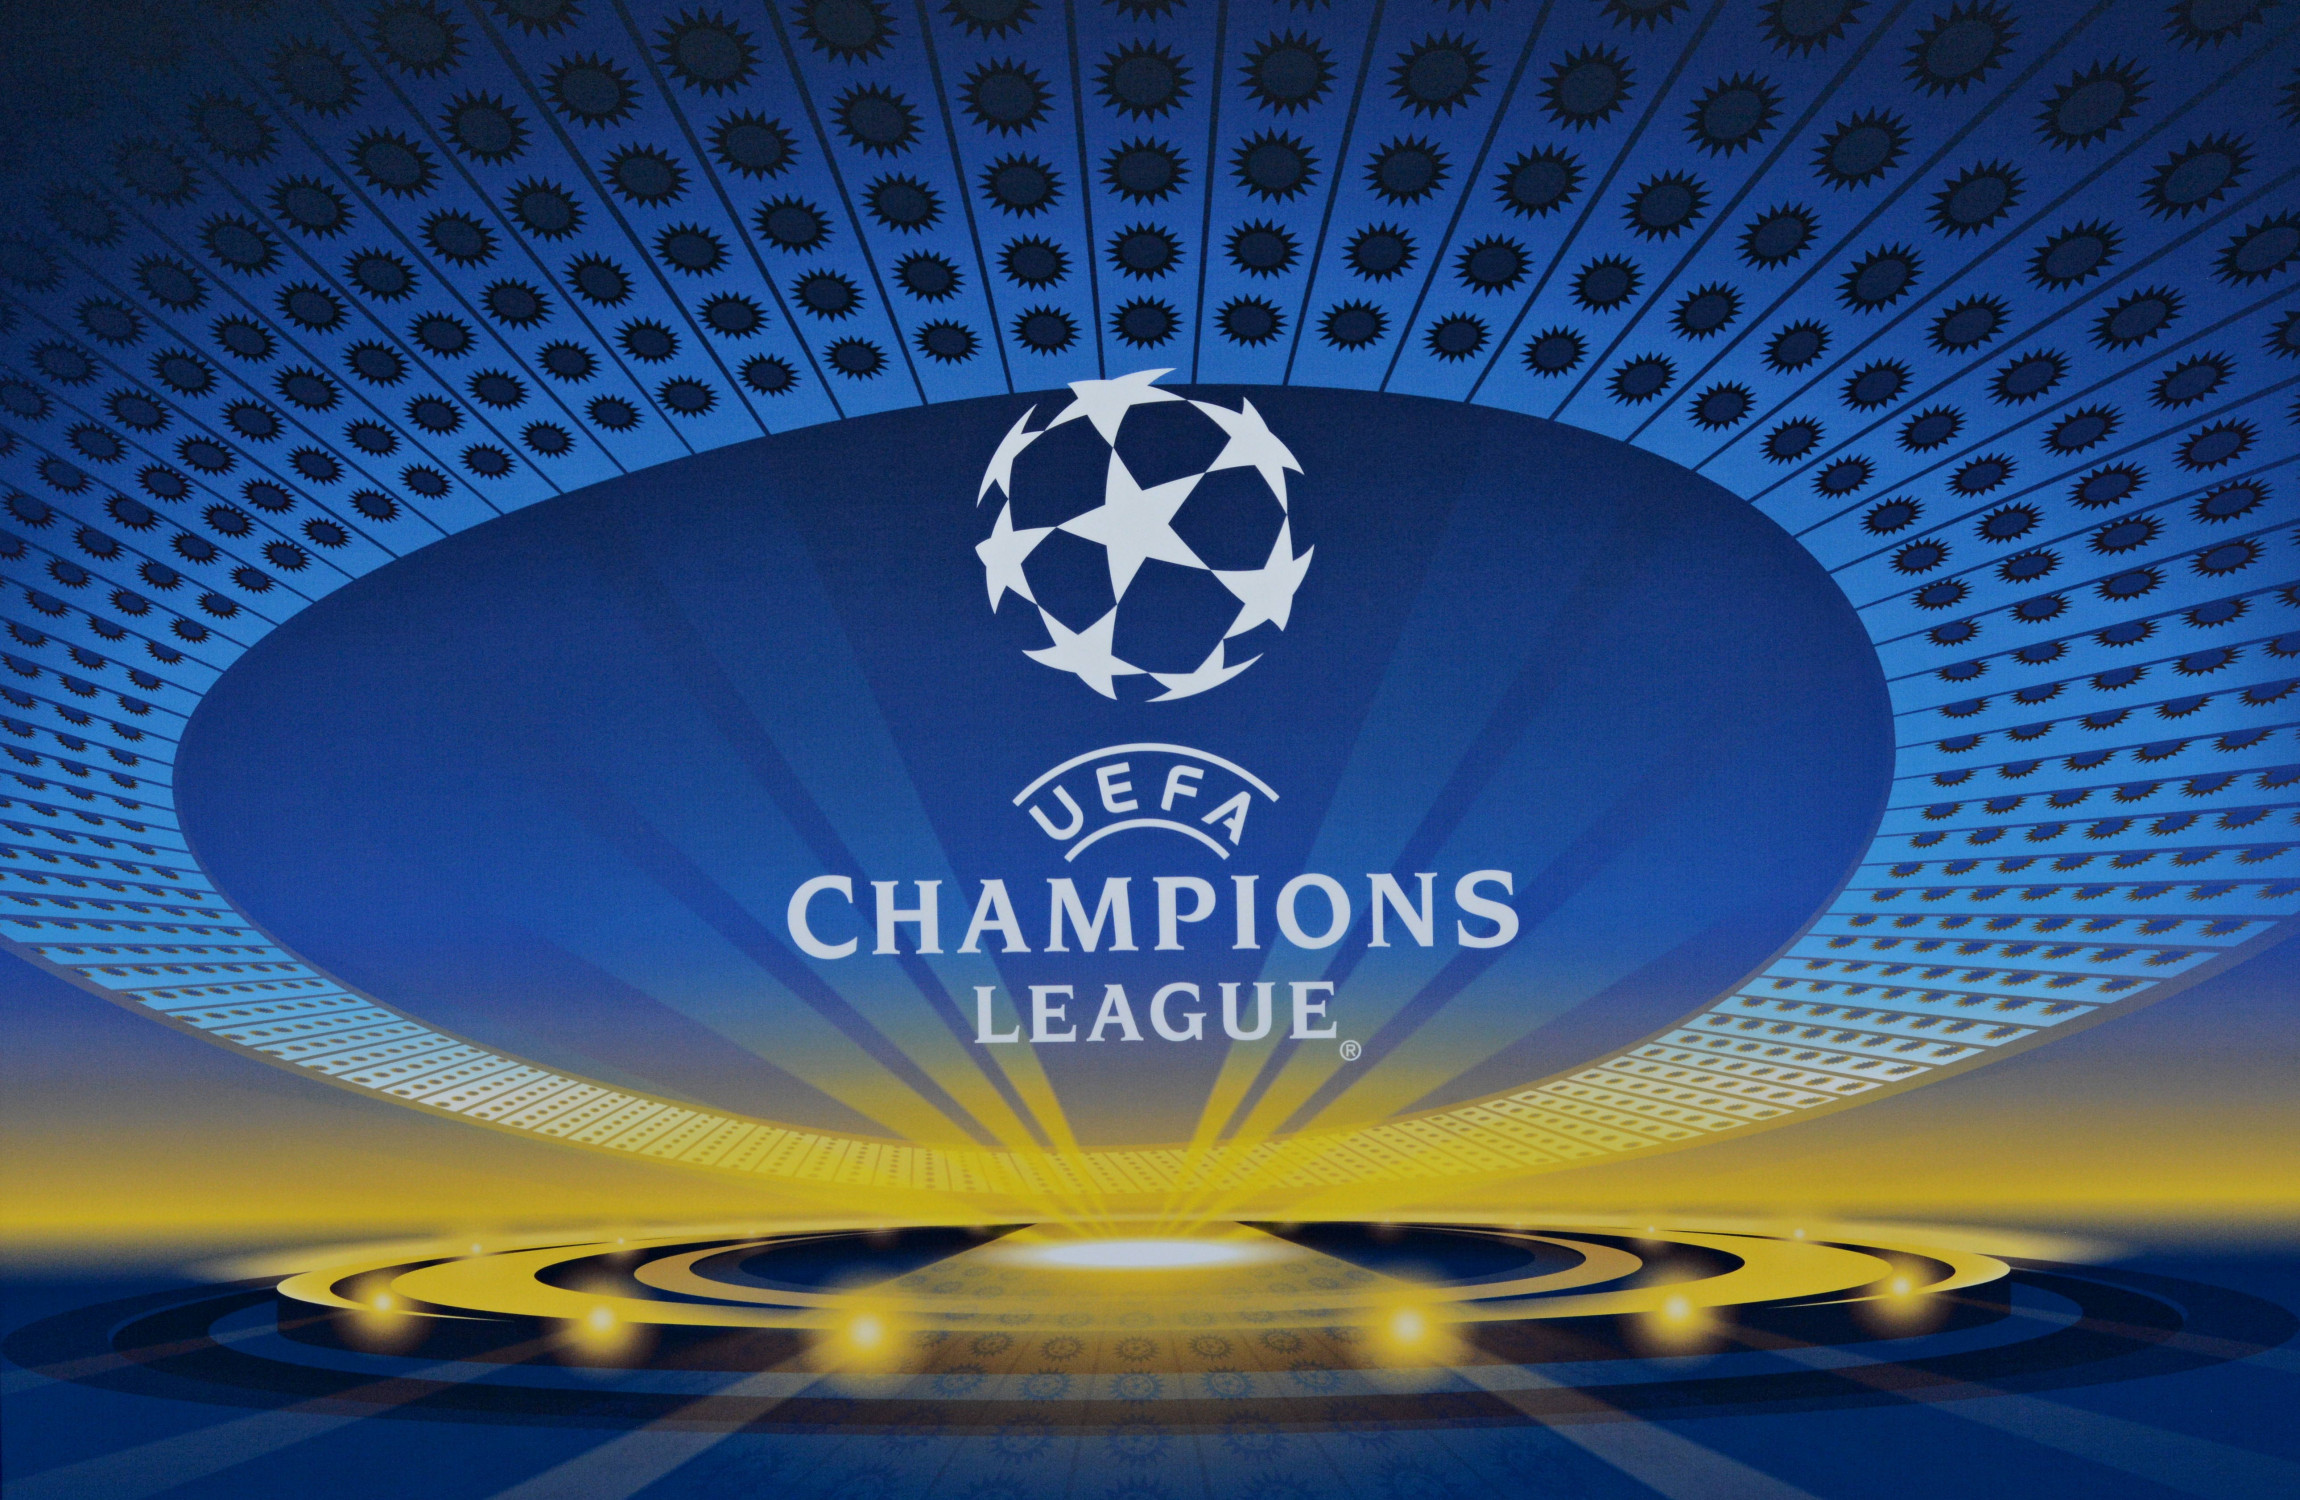 Champions League Change Up on Irish TV